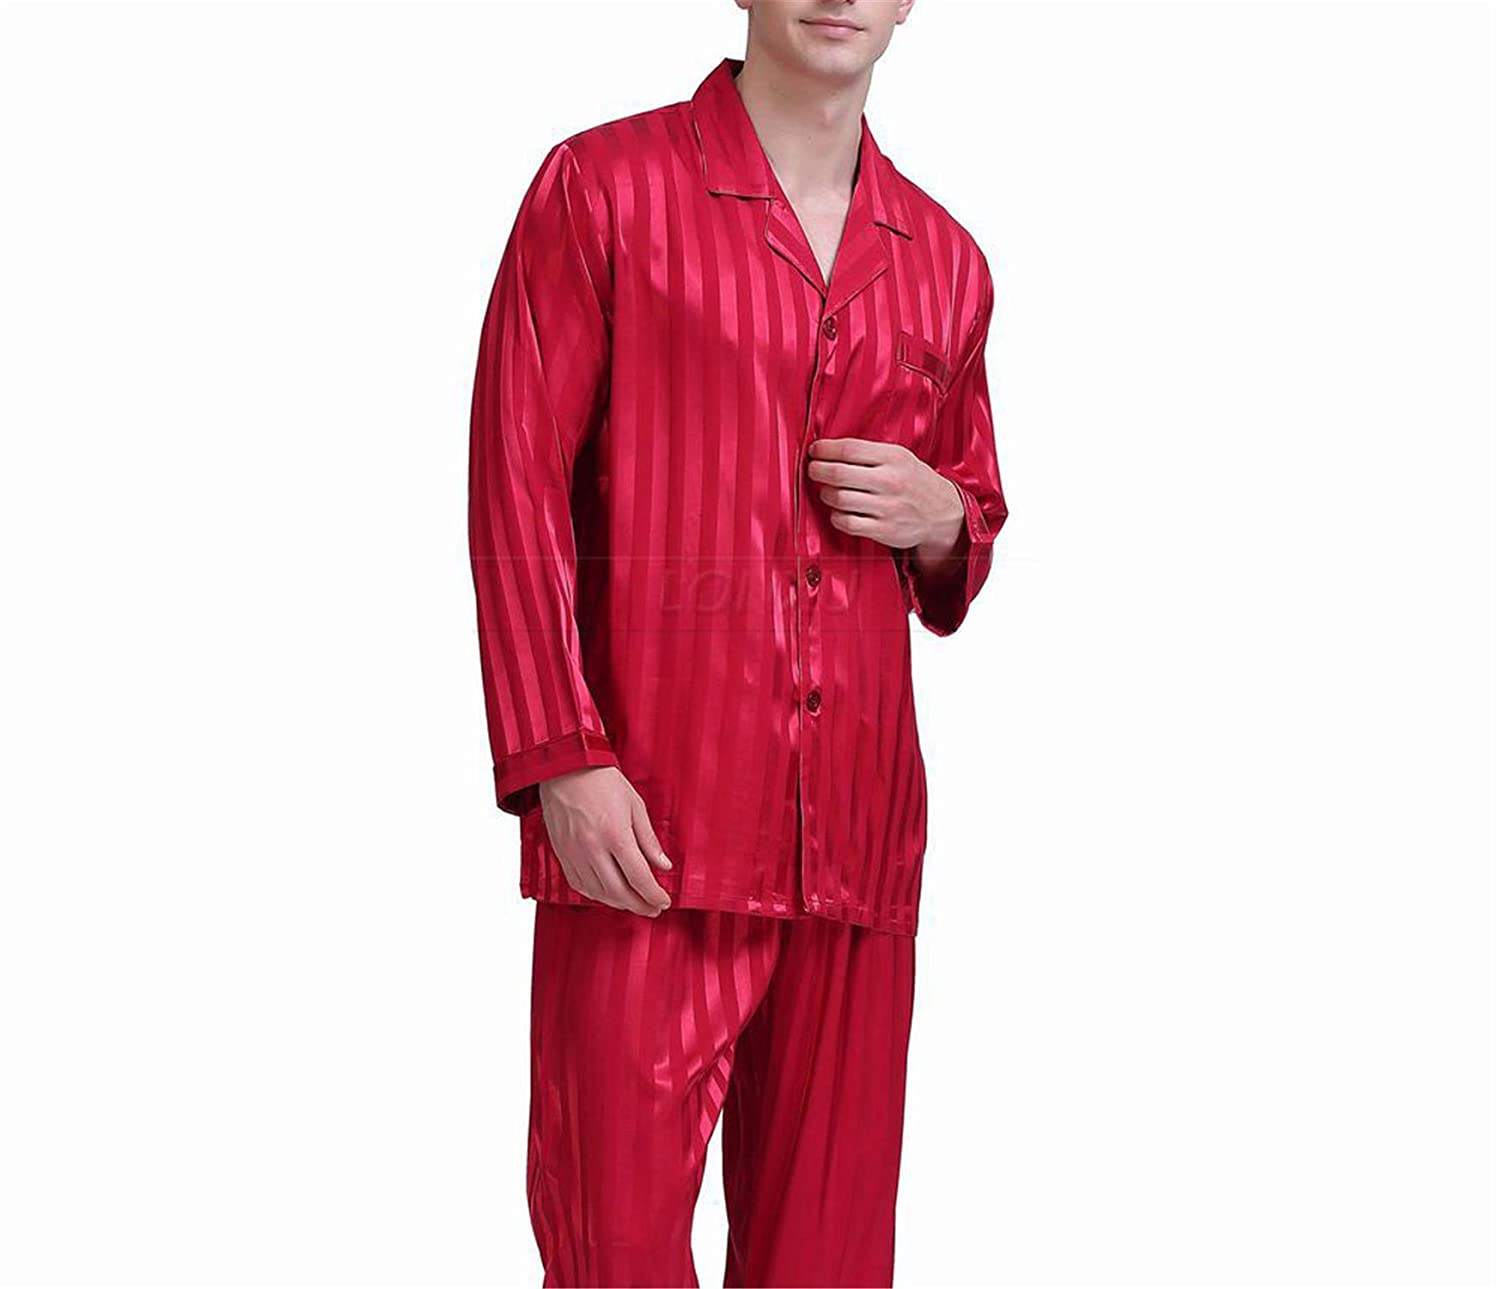 Thadensama Mens Silk Satin Pajamas Set Pajama Pyjamas Set Sleepwear Set Loungewear S M L XL 2XL 3XL 4XL Plus Striped Black